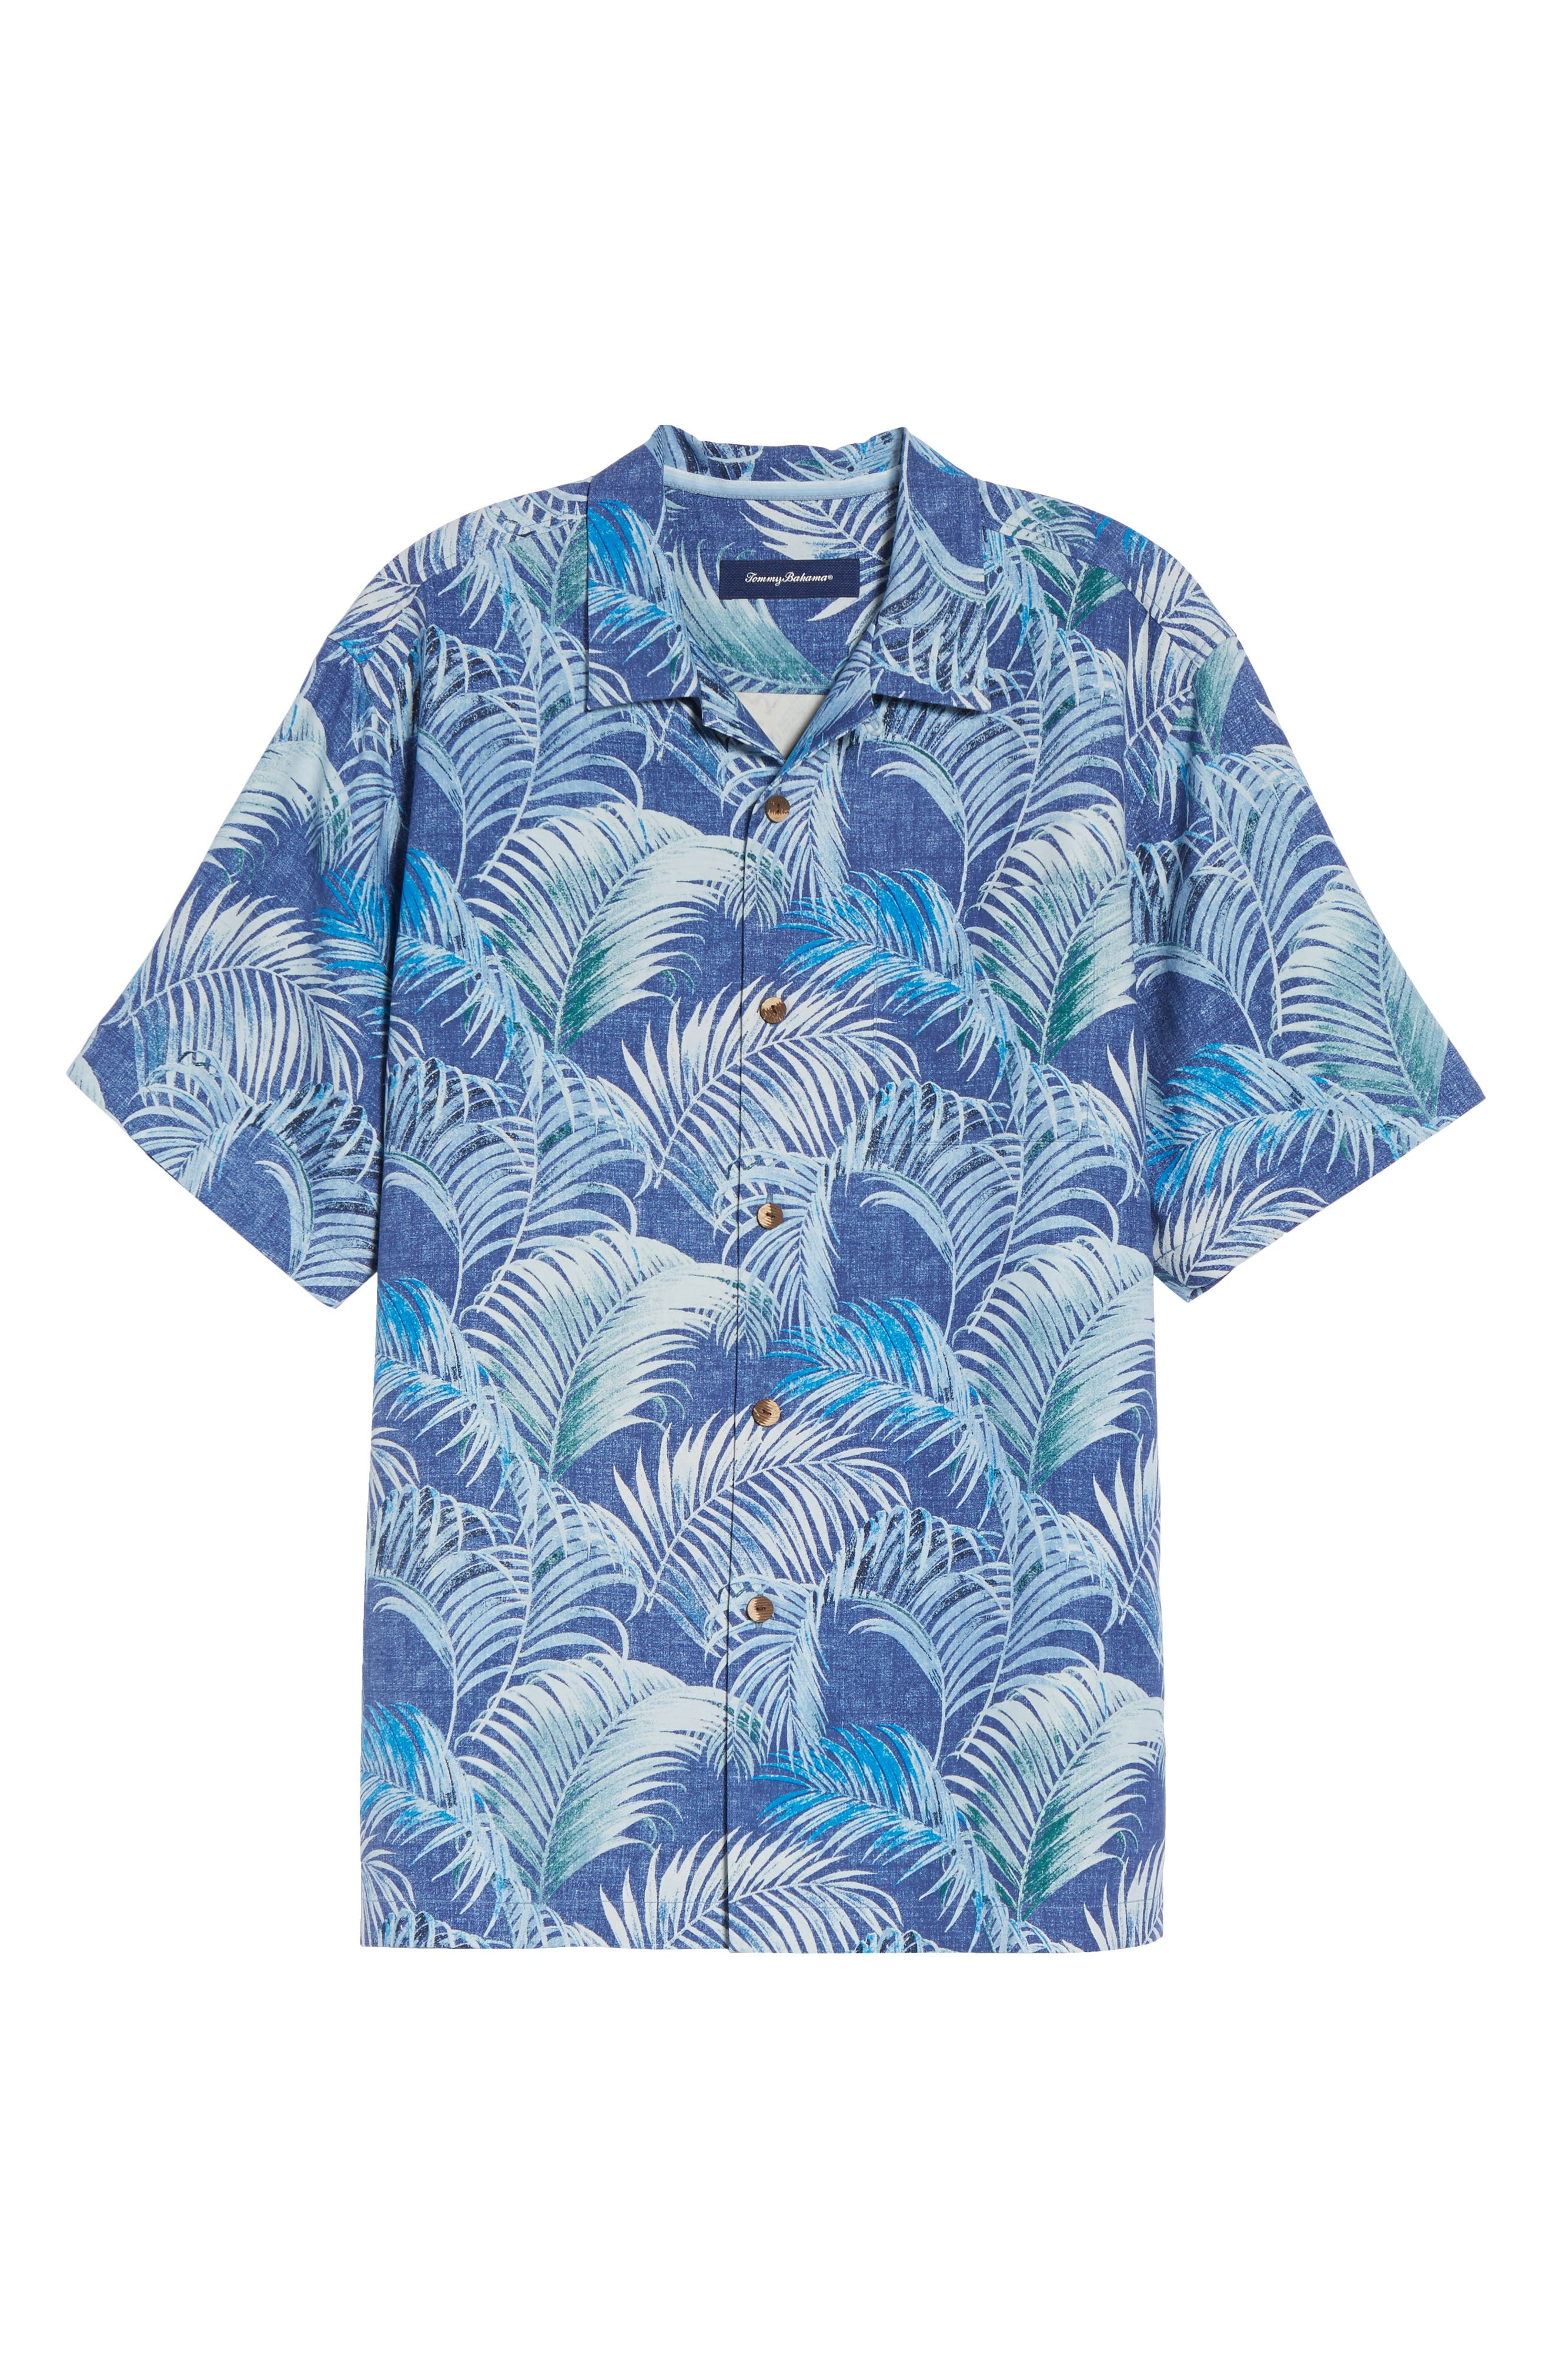 Garden of Hope and Courage Silk Camp Shirt,                             Alternate thumbnail 6, color,                             400